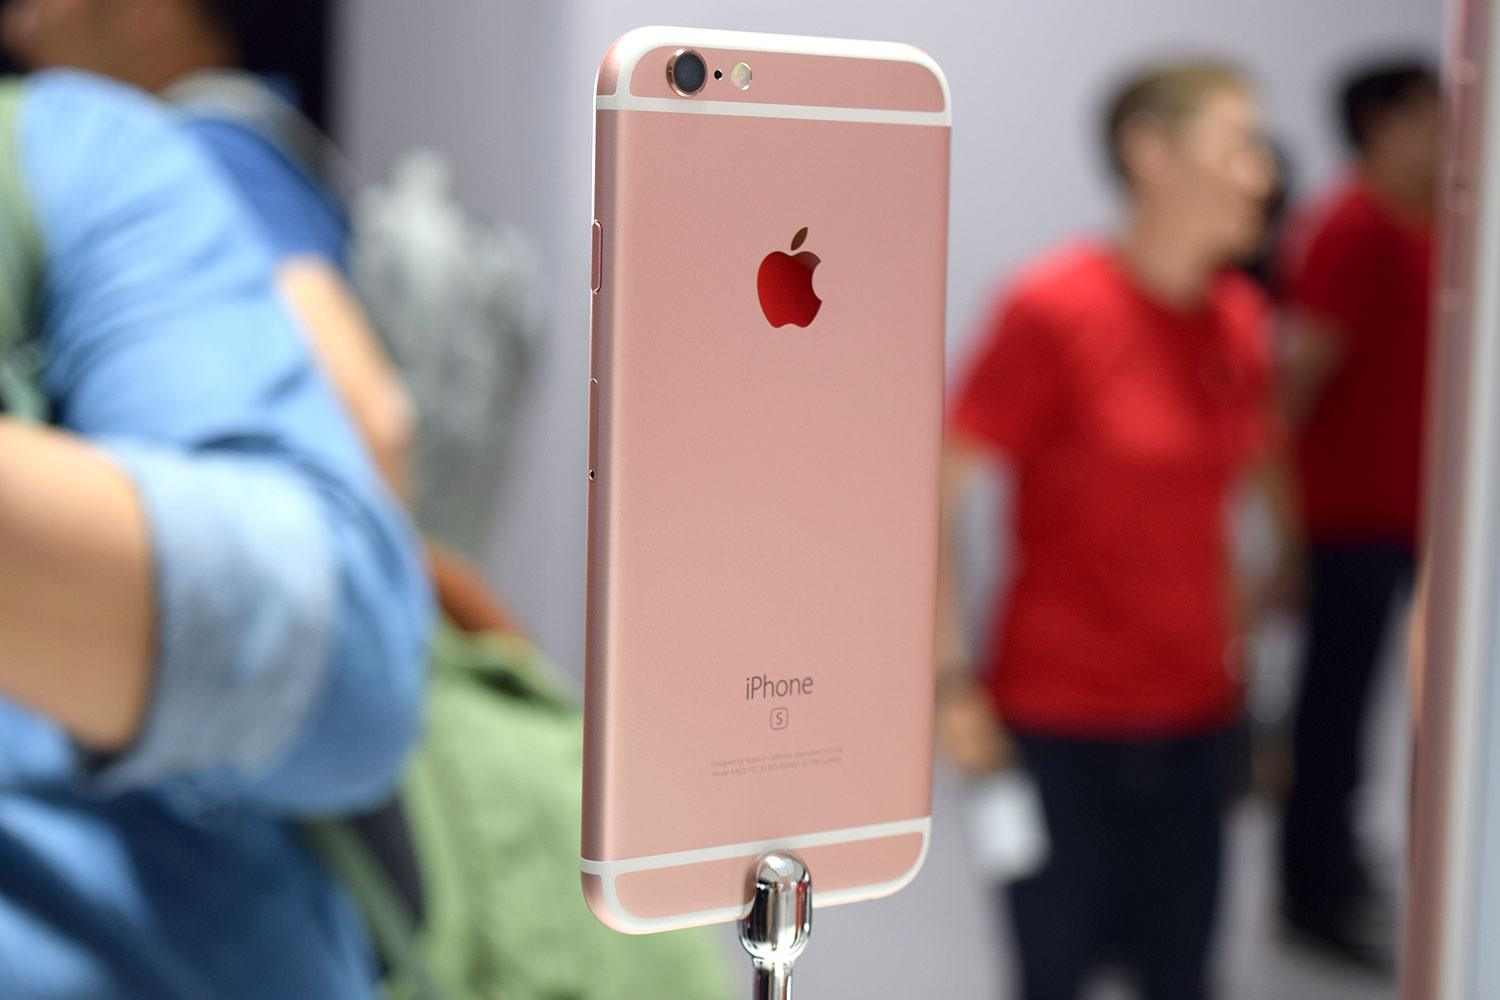 iPhone 6s Plus Russia 5.5 5 vs. iPhone 6 pink gold 5